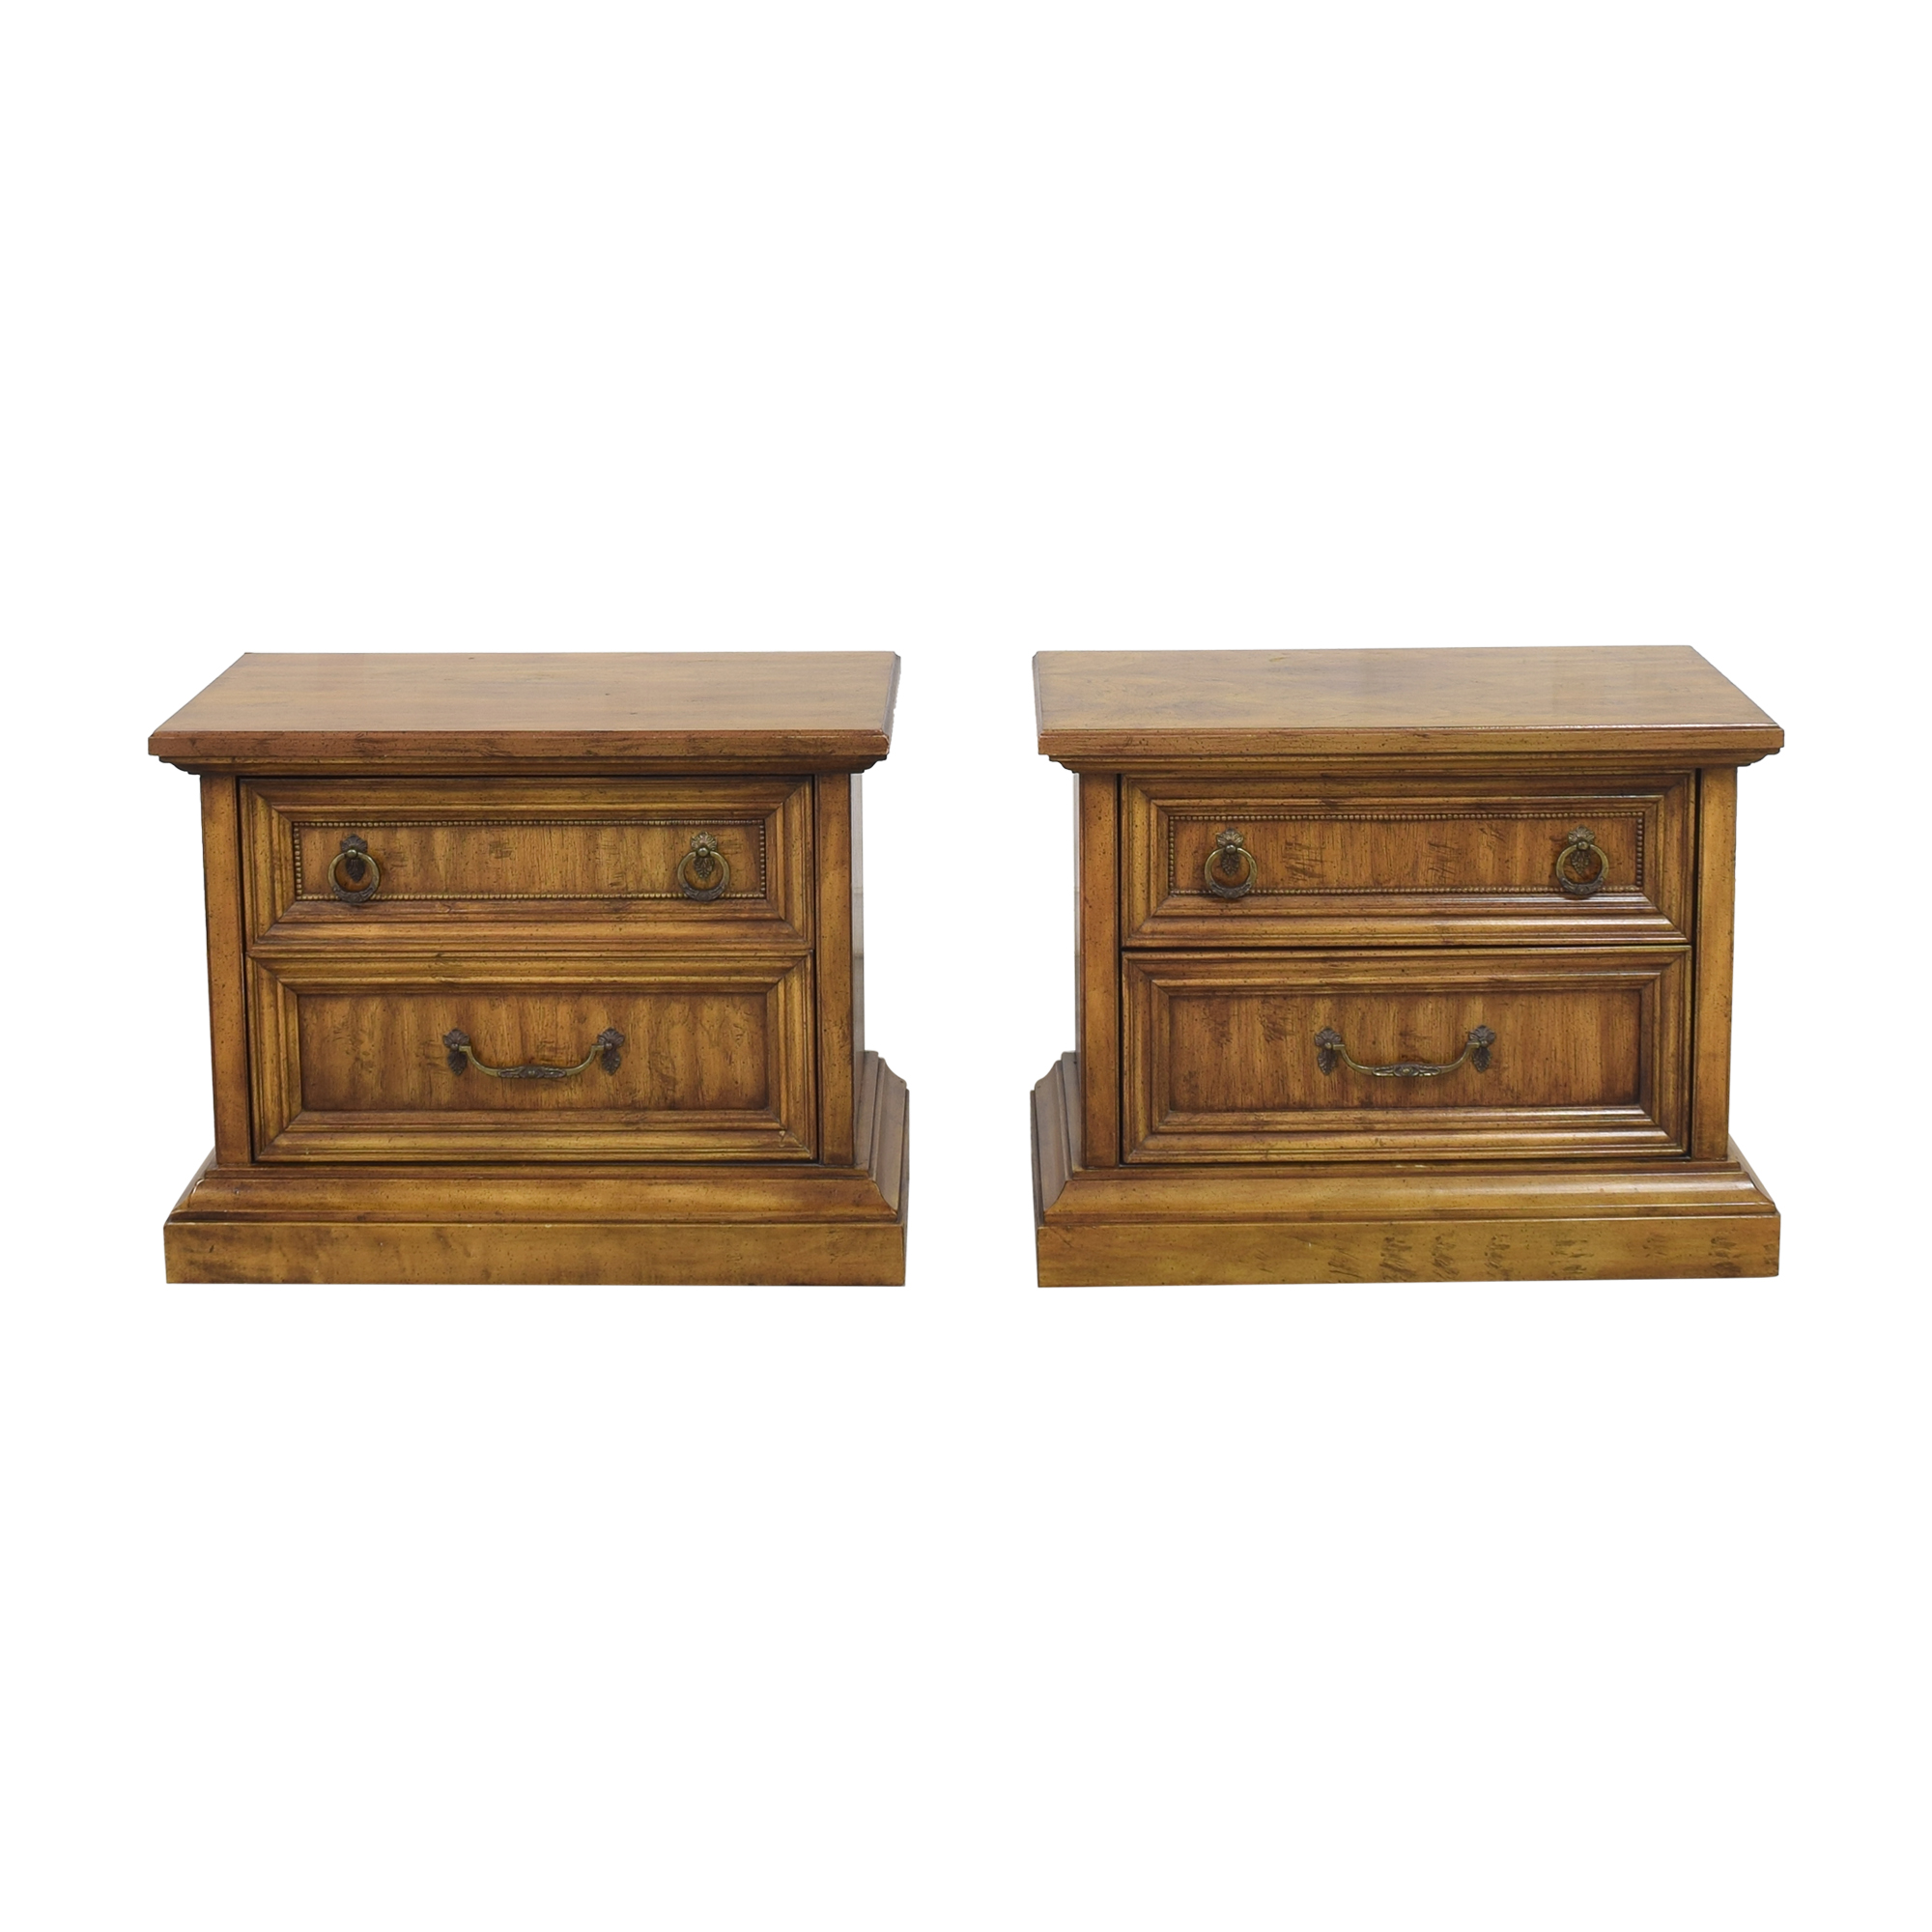 Stanley Furniture Stanley Furniture Two Drawer Nightstands on sale